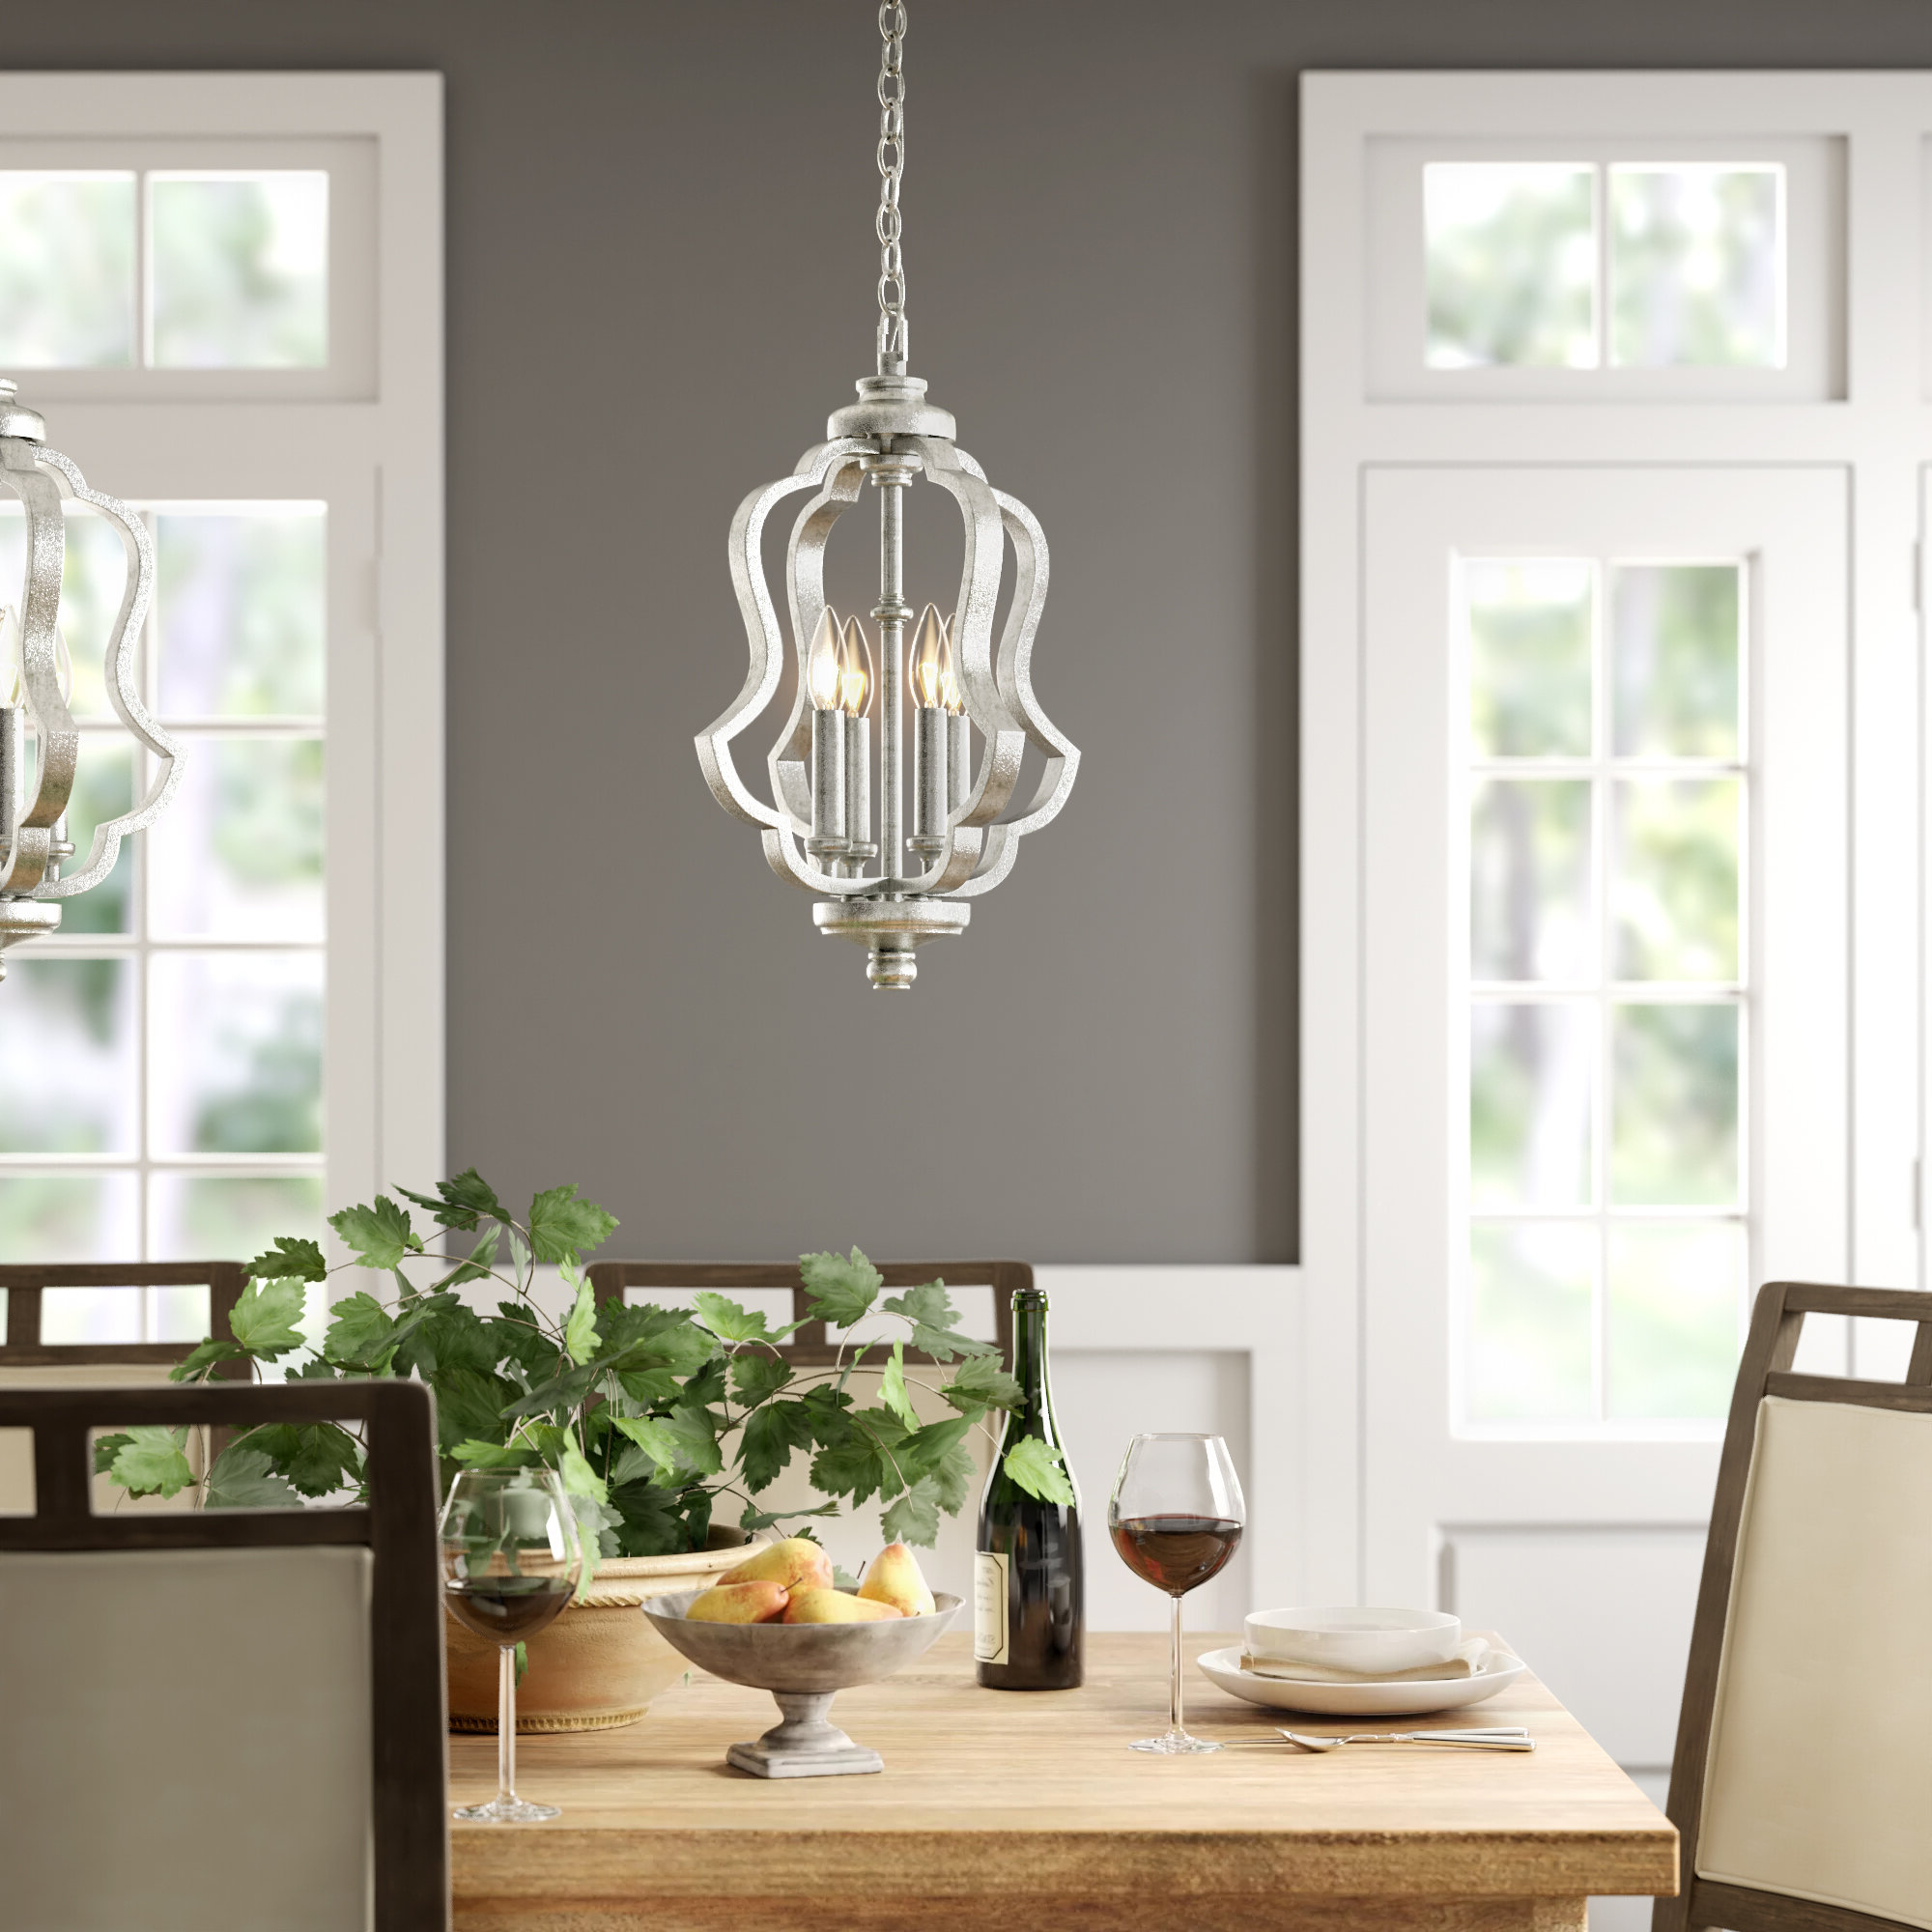 Erroll 4-Light Lantern Pendant with regard to Current Armande 4-Light Lantern Drum Pendants